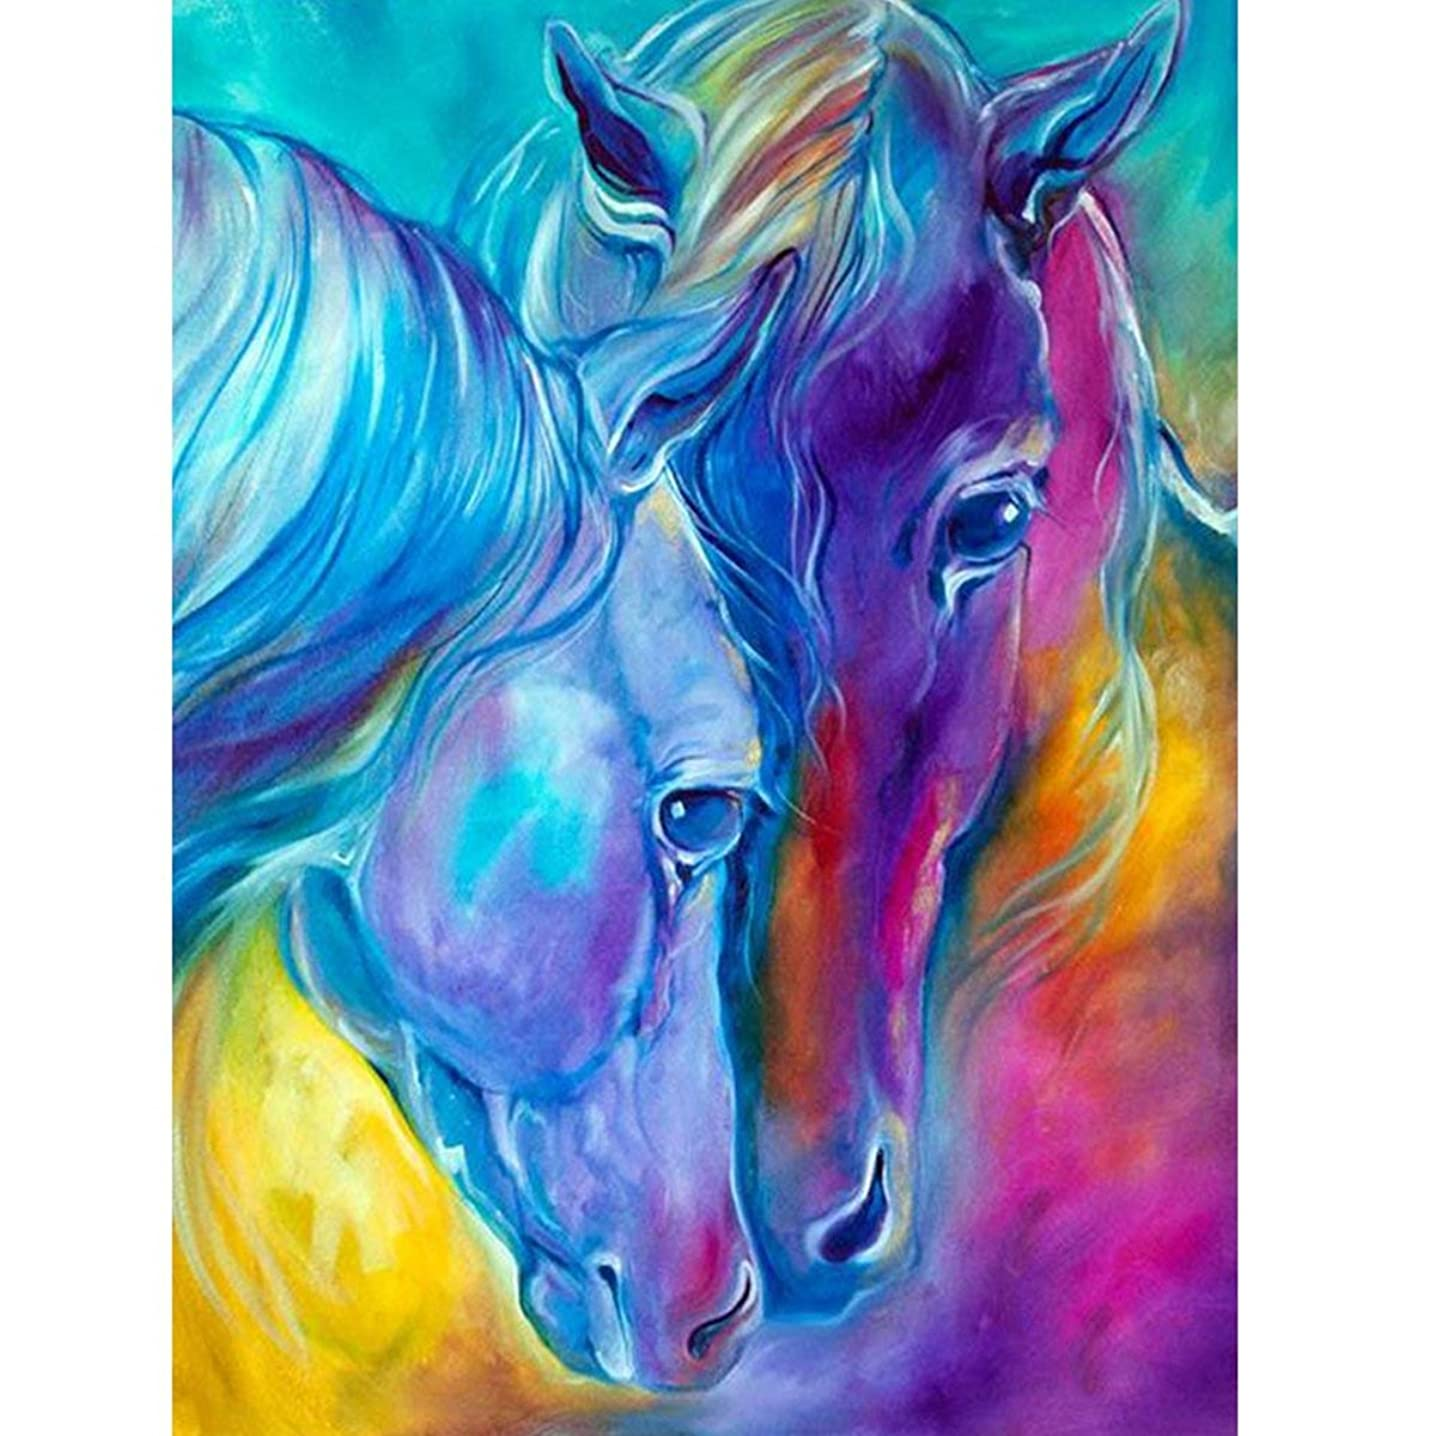 DIY 5D Diamond Painting by Number Kits, Two Colored Horses Full Drill Rhinestone Embroidery Cross Stitch Pictures Arts Craft for Home Wall Decor 11.8 x 15.8 inch